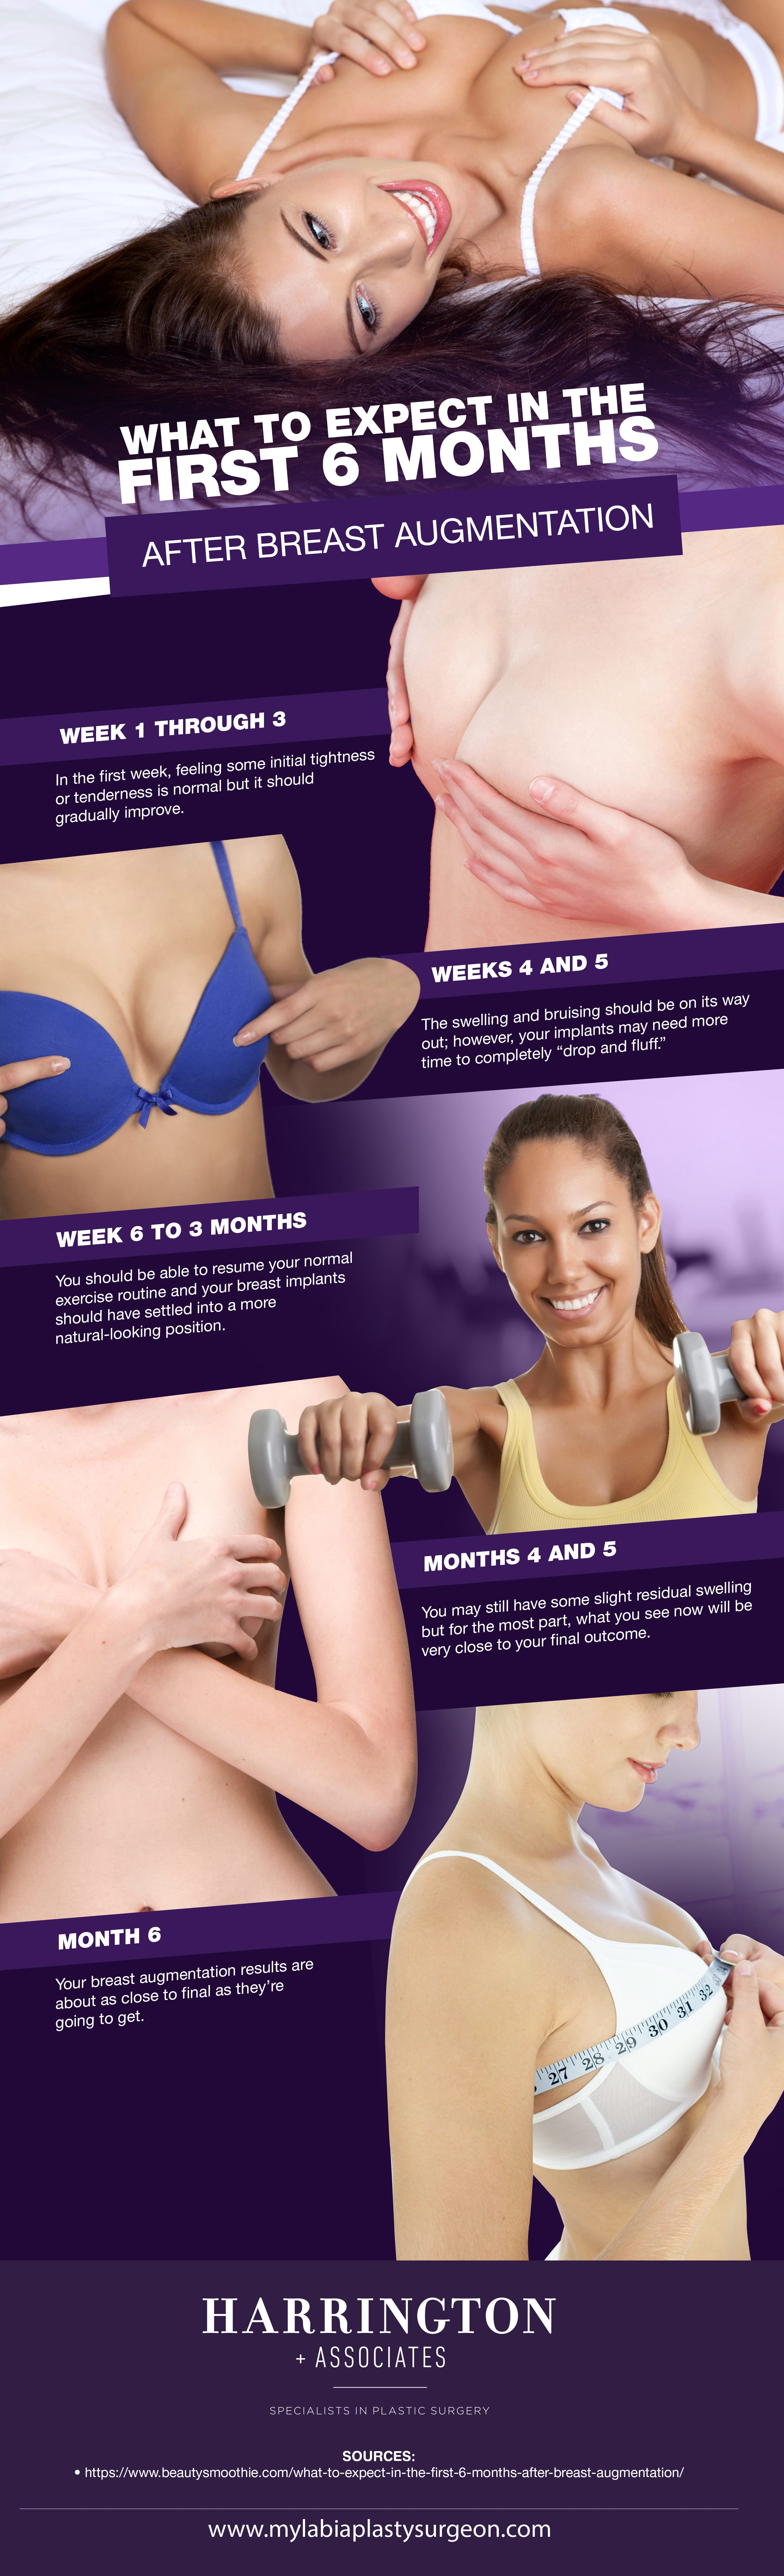 What to Expect in the First 6 Months After Breast Augmentation [Infographic] img 1